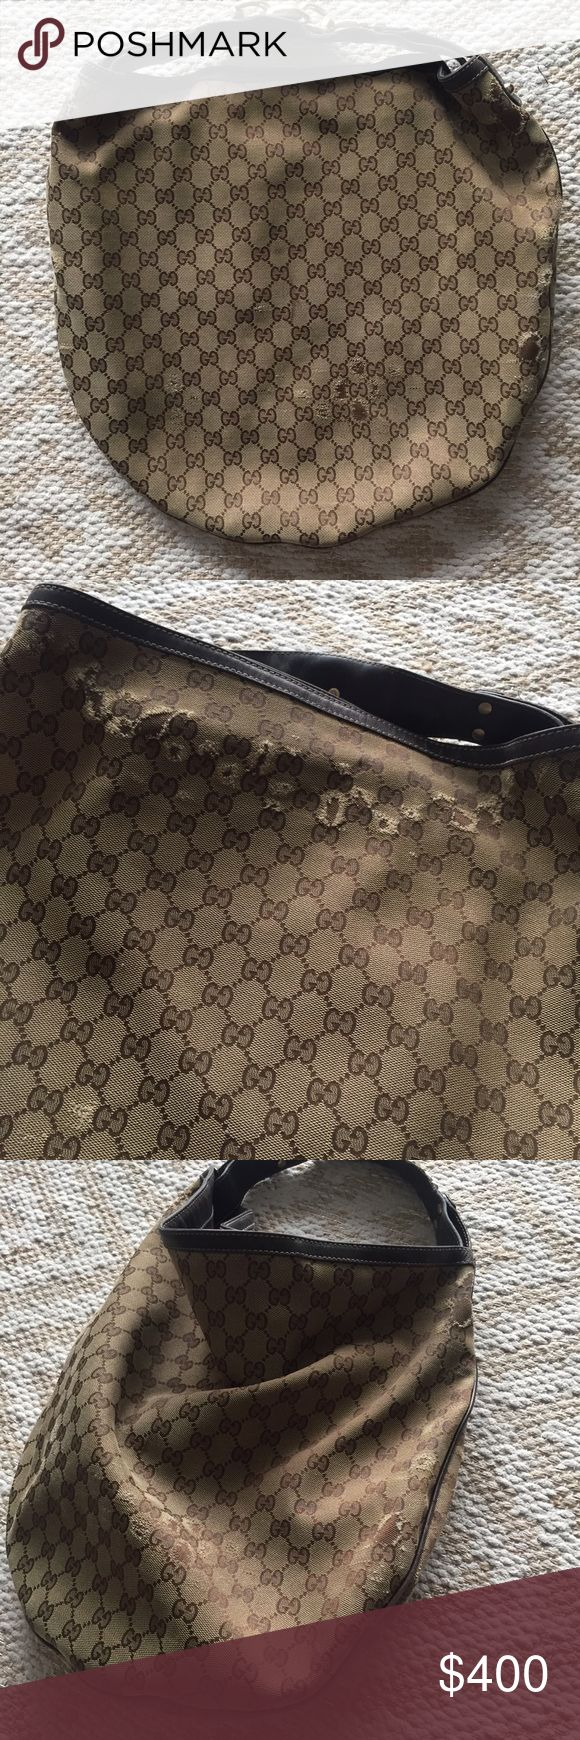 Gucci logo round hobo shoulder bag! Authentic Gucci logo round hobo bag! Used with some wear and tear, but leather is perfect and bag is clean! Gucci Bags Shoulder Bags